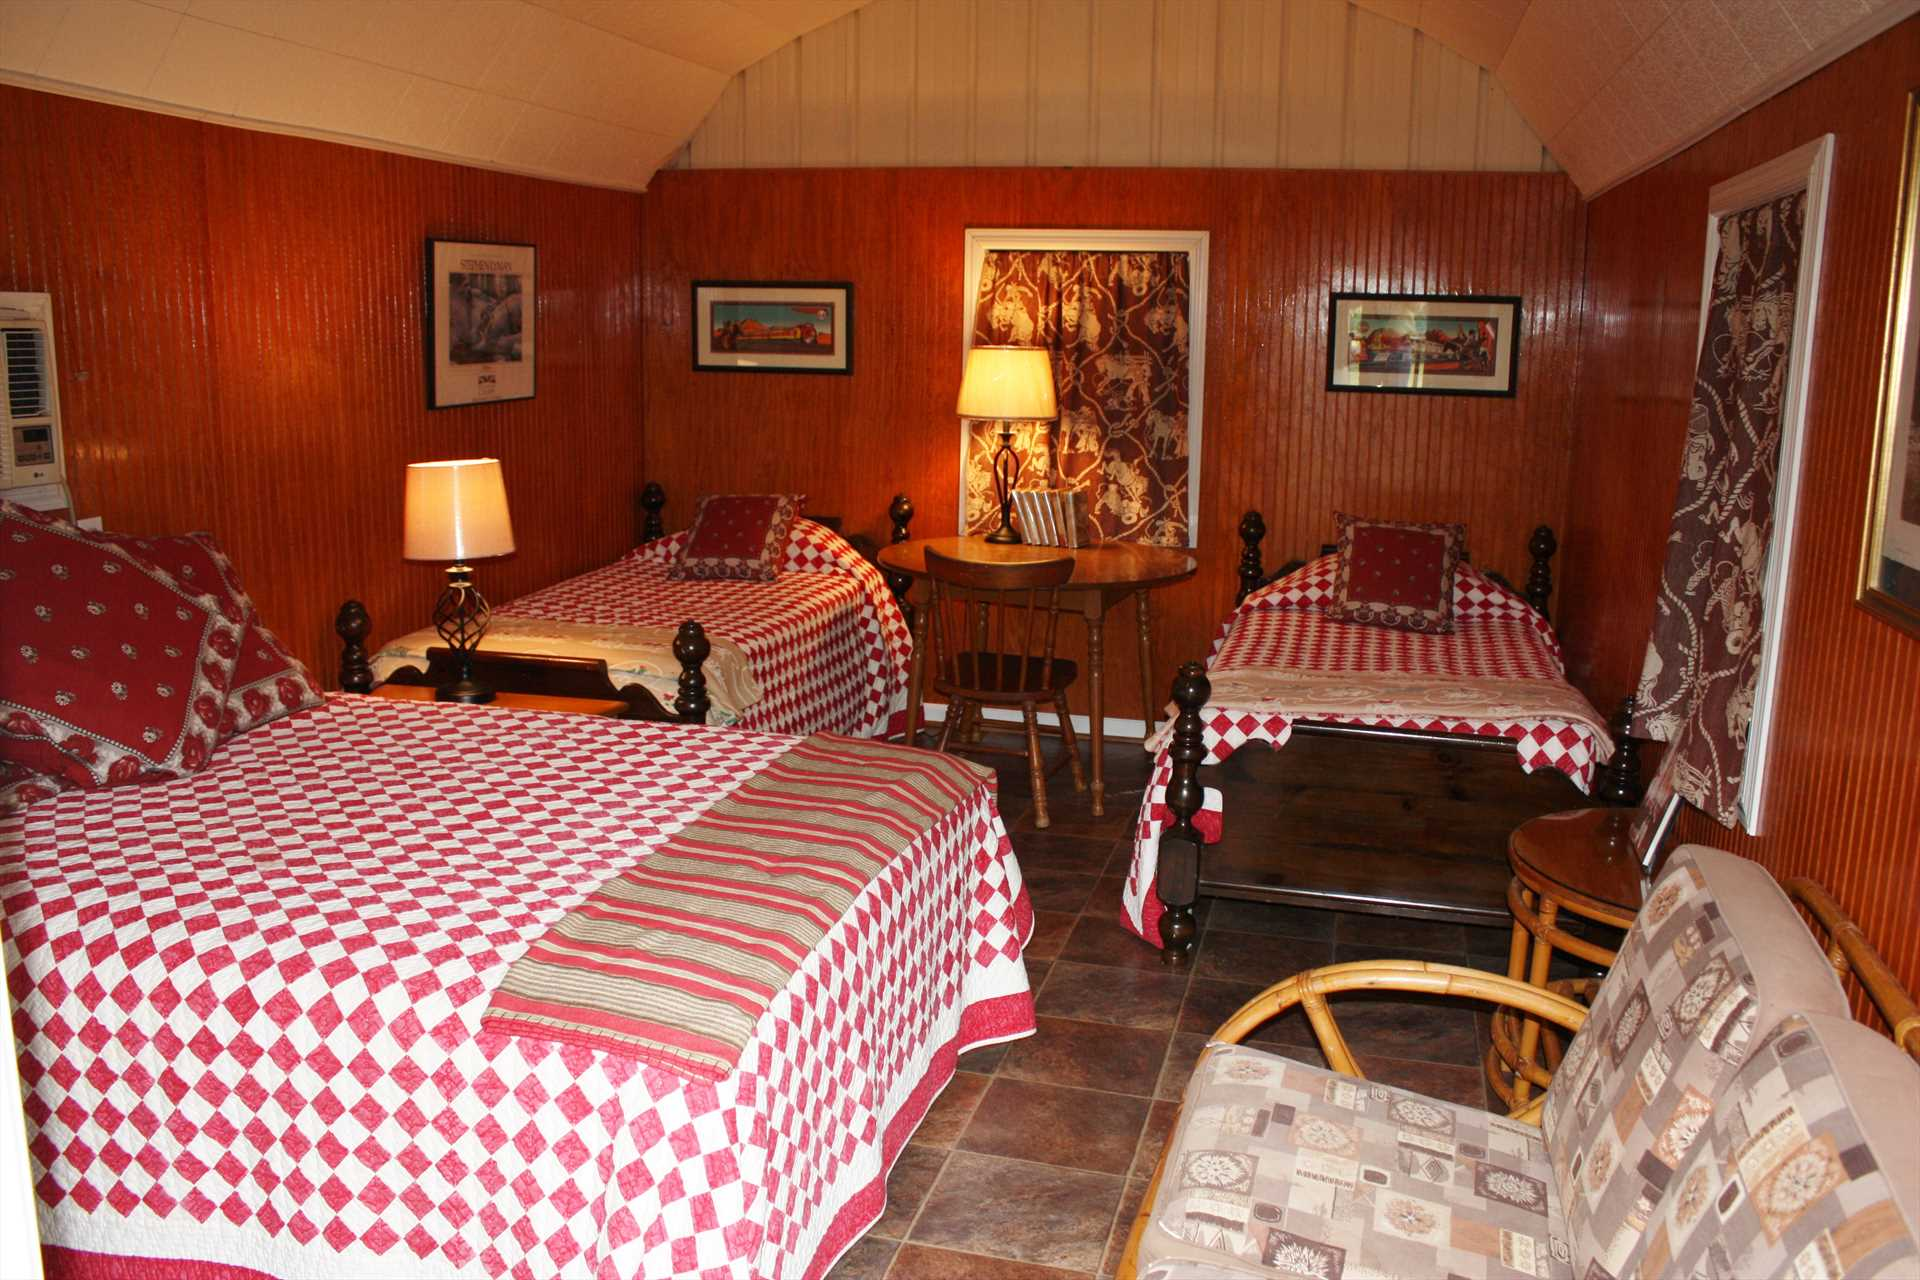 Four can sleep in the cabin, with two twin beds and a queen. Both the cabin and main house include soft and clean bed and bath linens.